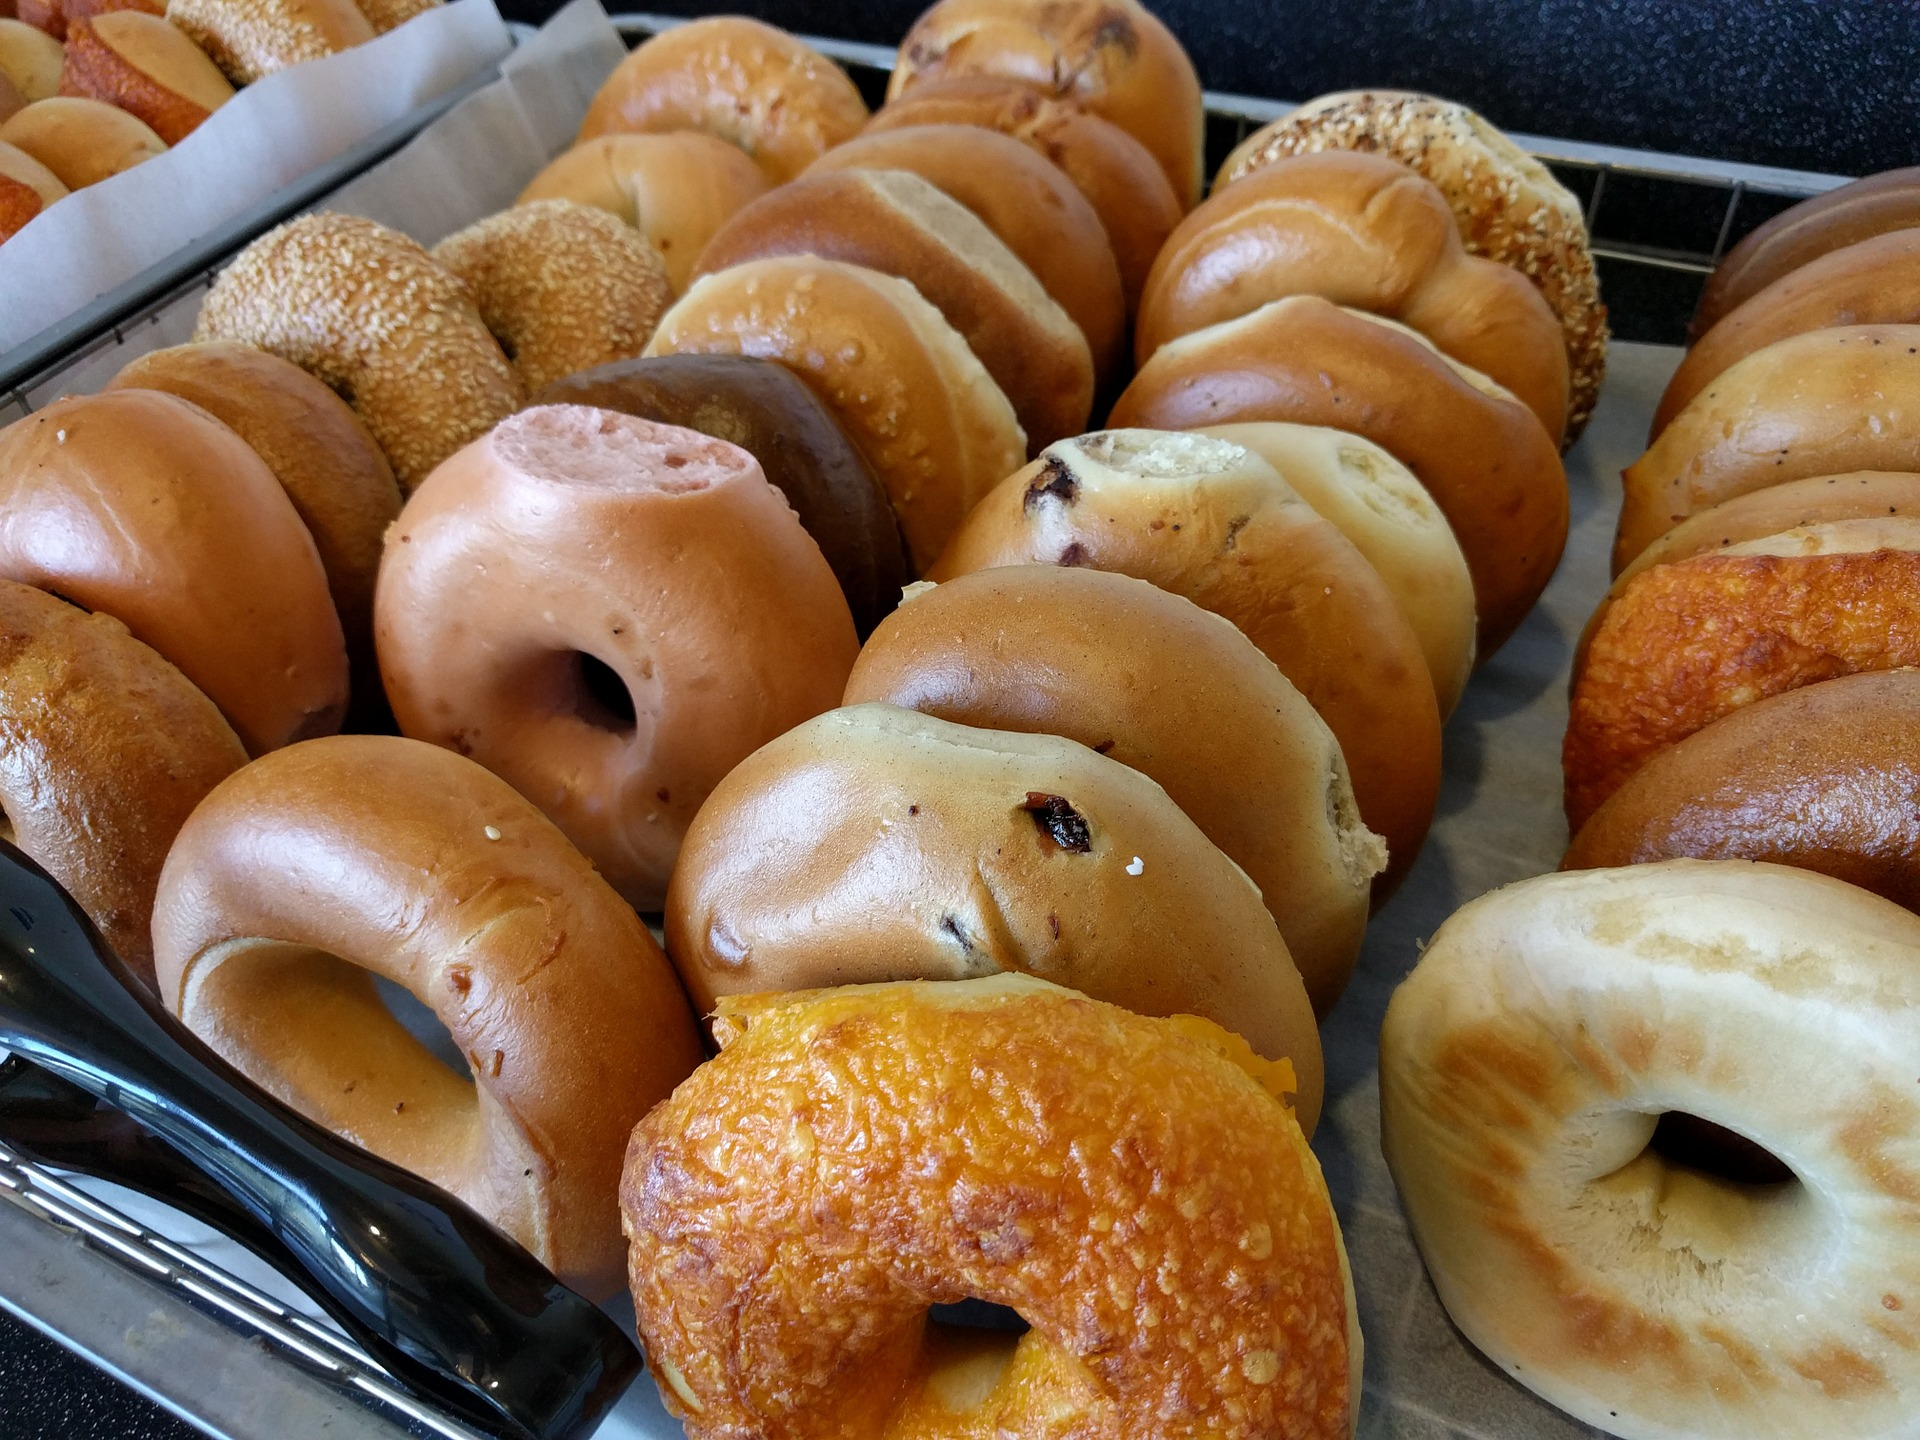 unintended consequences from bagel tax and window tax